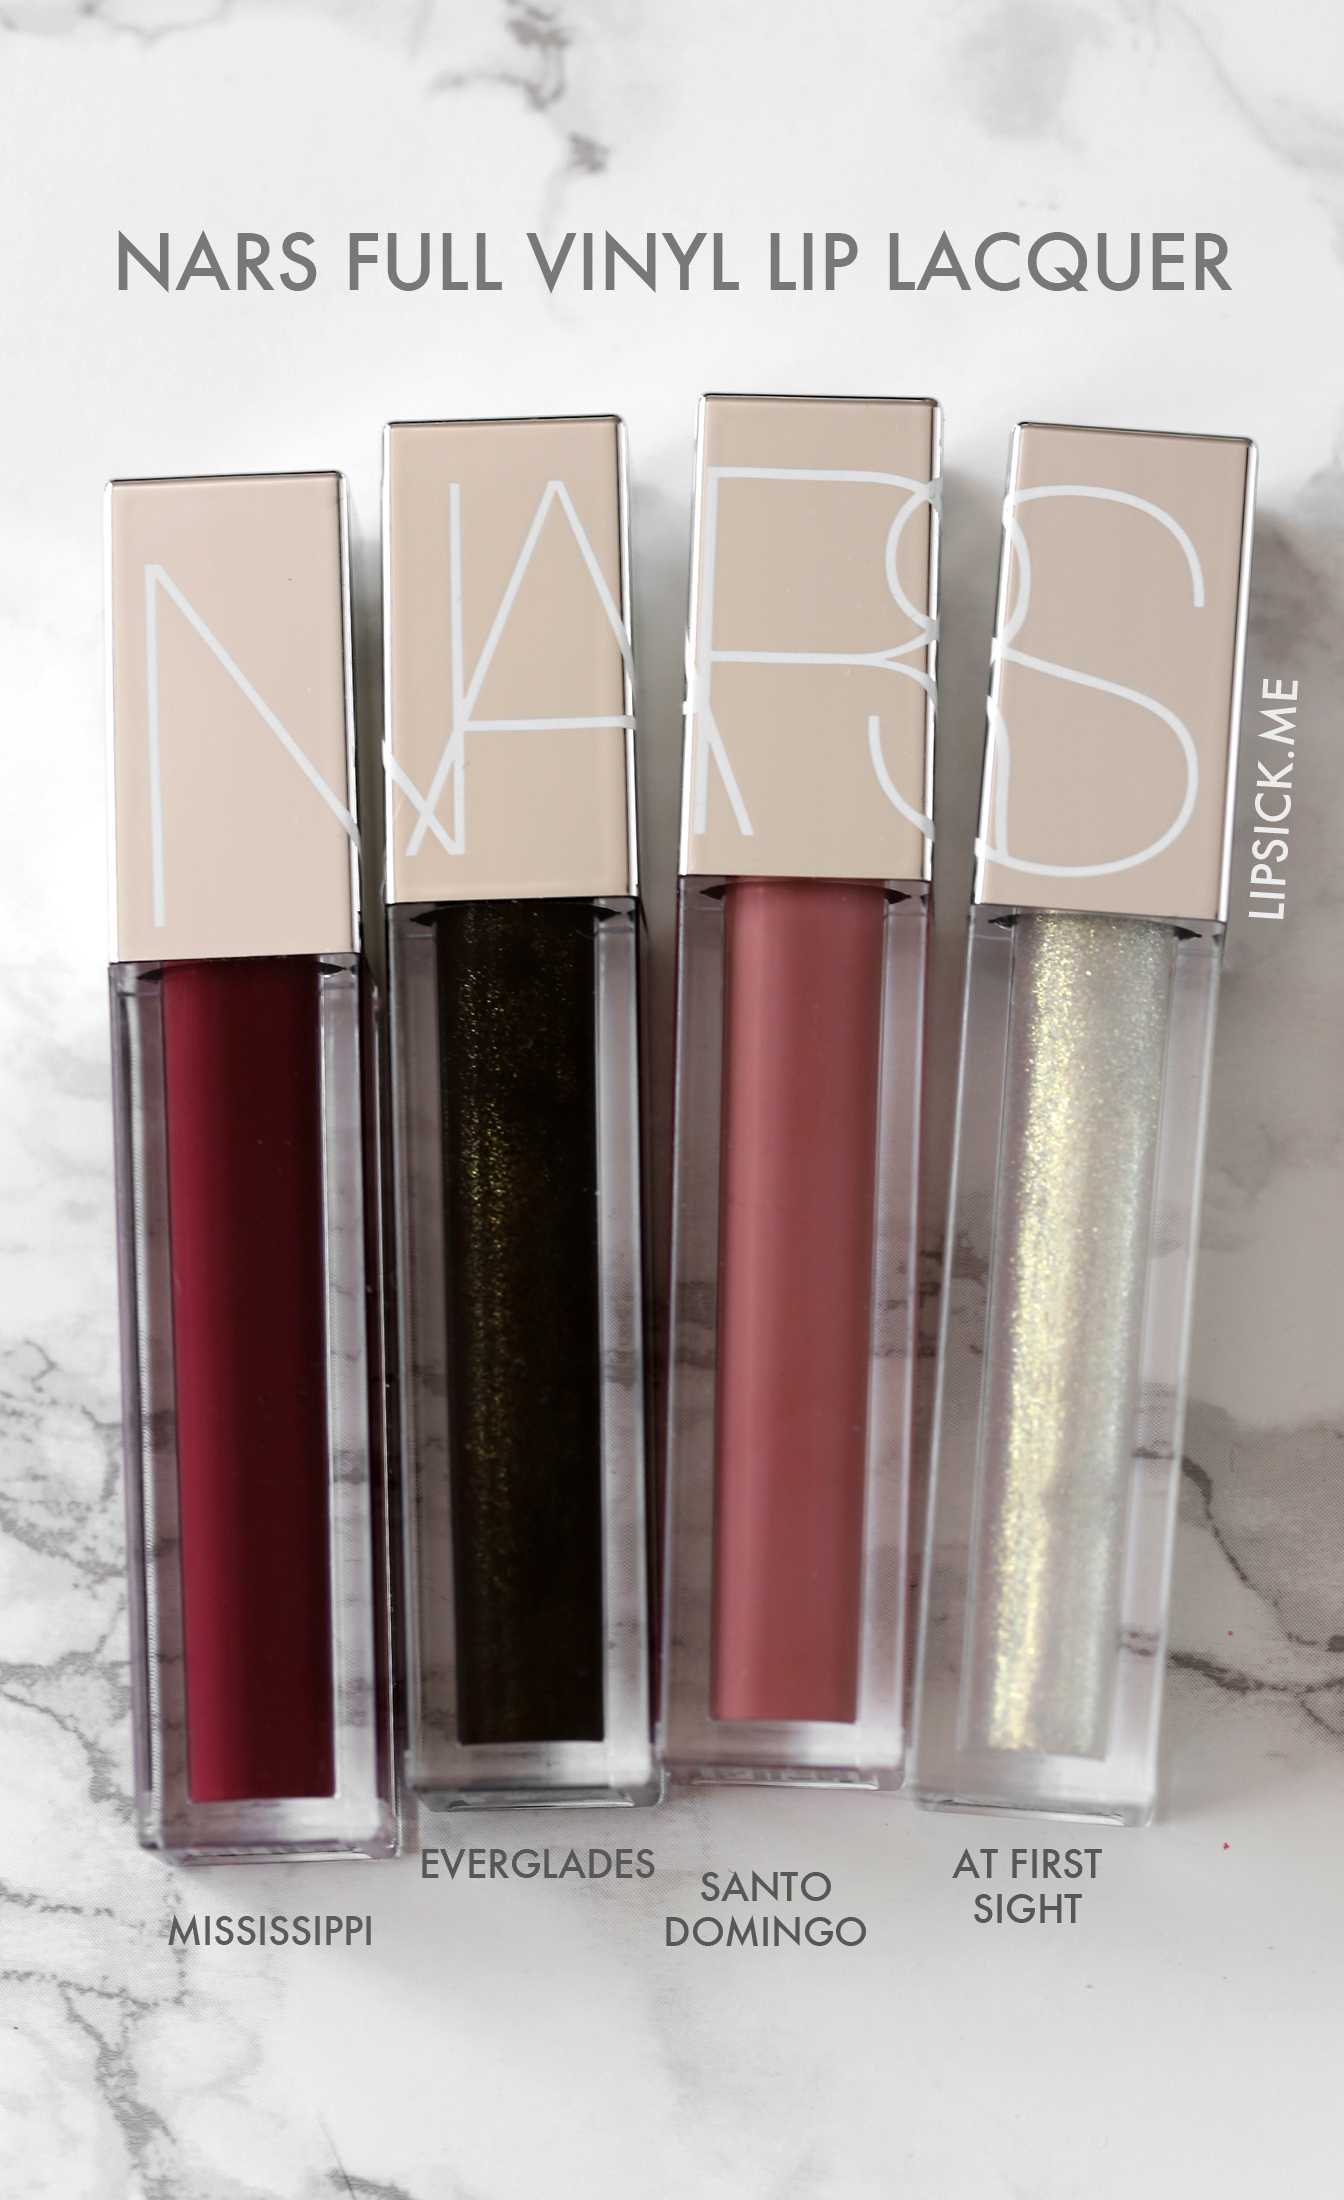 NARS Full Vinyl Lip Lacquer review and swatches - lipsick.me - lipstick beauty blog by nathalie martin_4385 copy.jpg